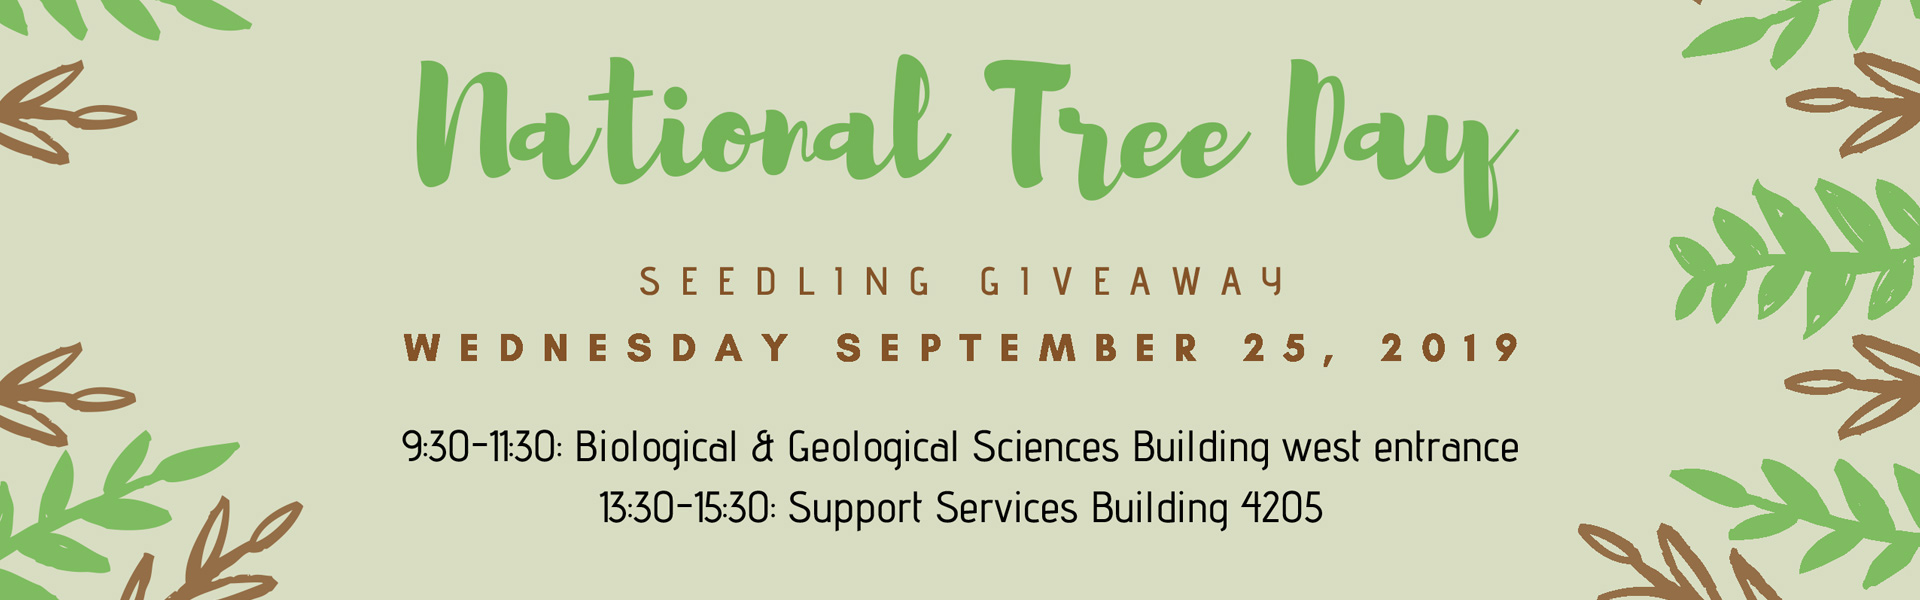 National Tree Day seedling giveaway